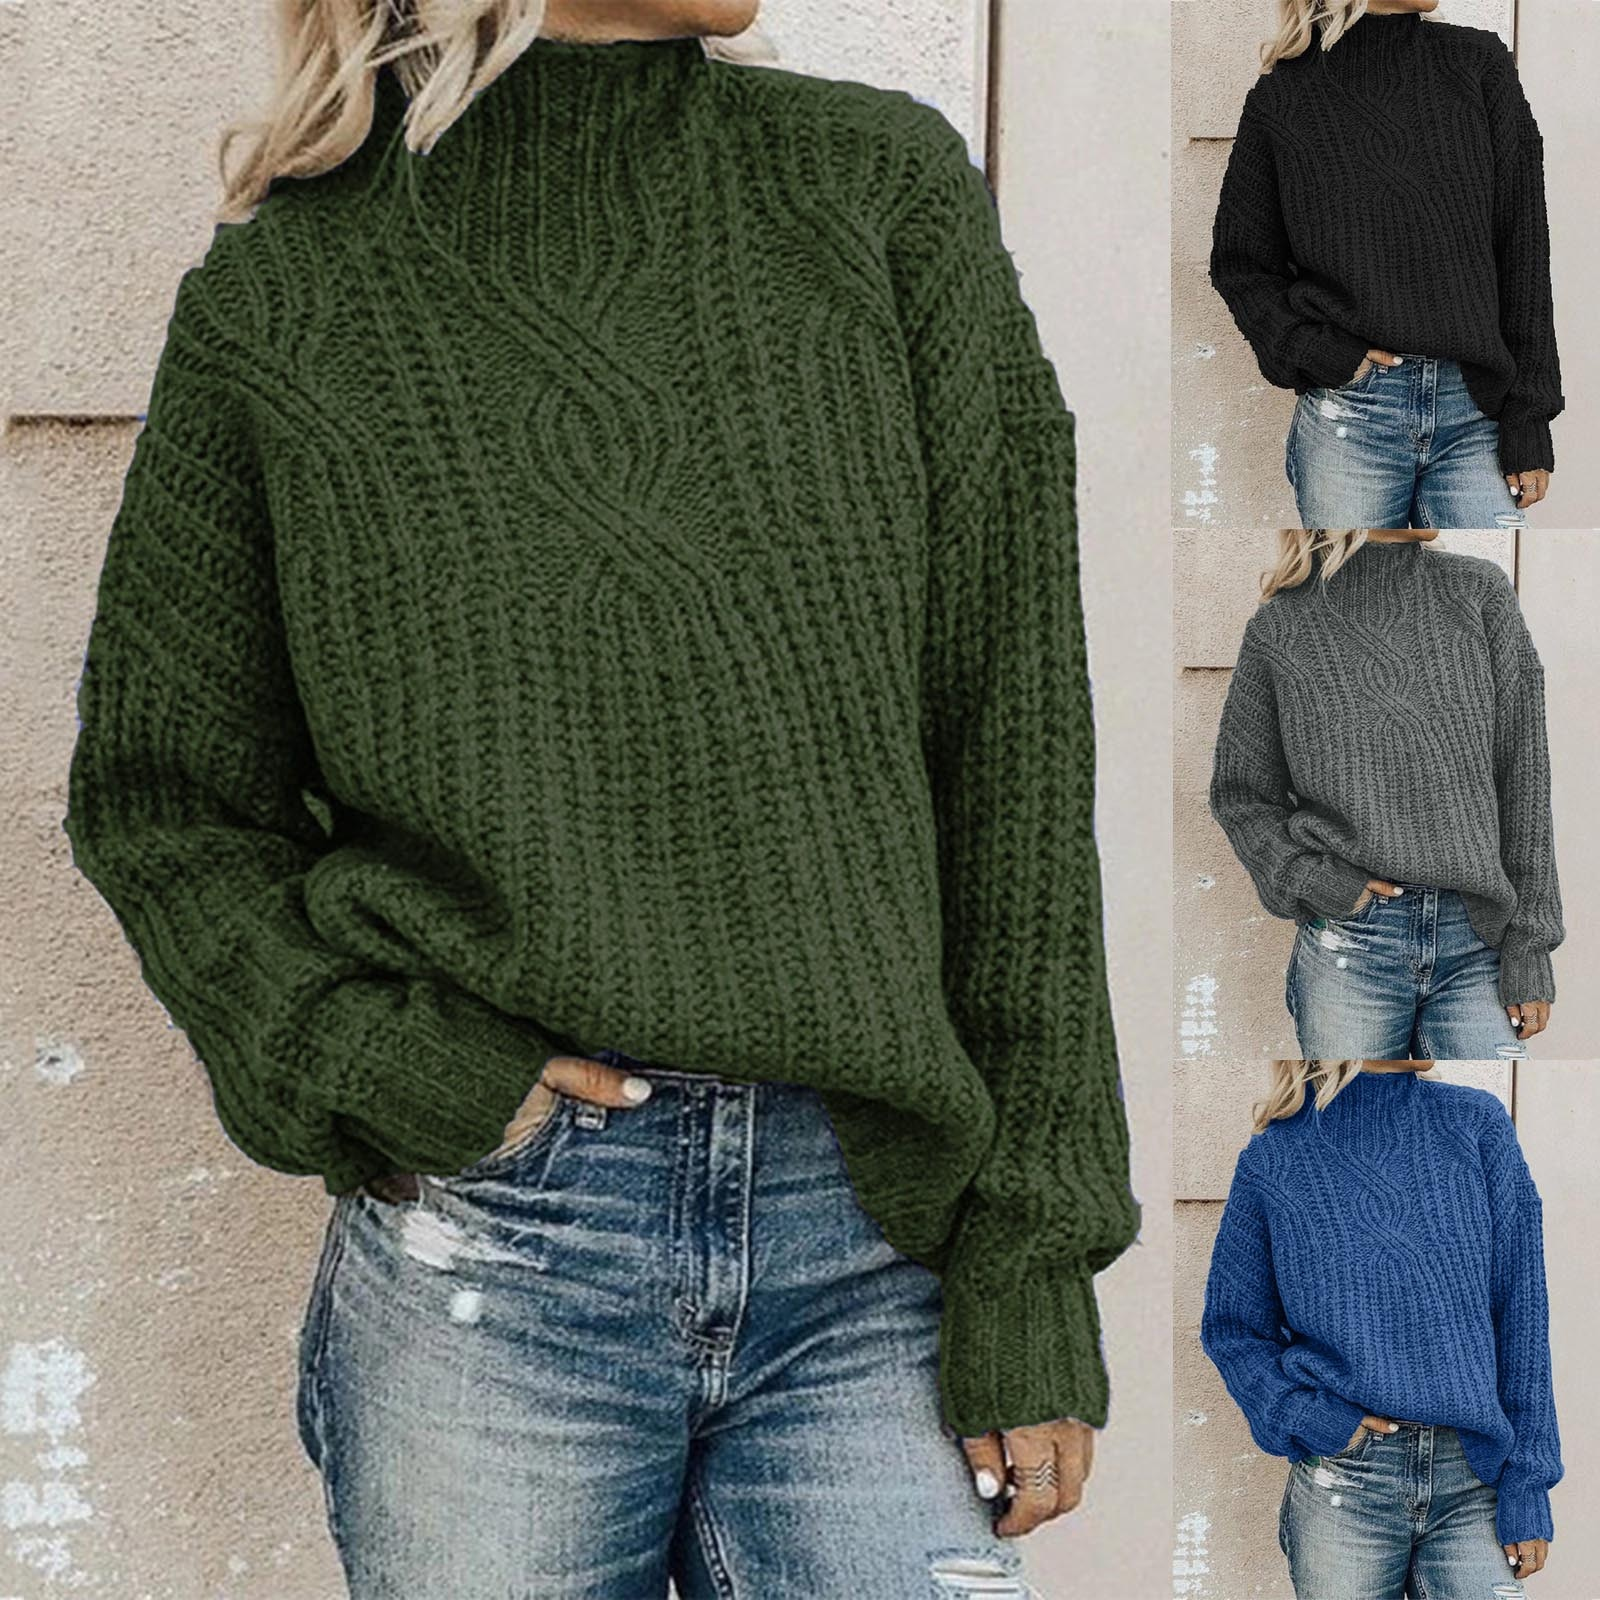 2020 Womens Sweater Fashion Solid Long Sleeve Loose Turtleneck knitting Sweater sweter mujer pull femme hiver